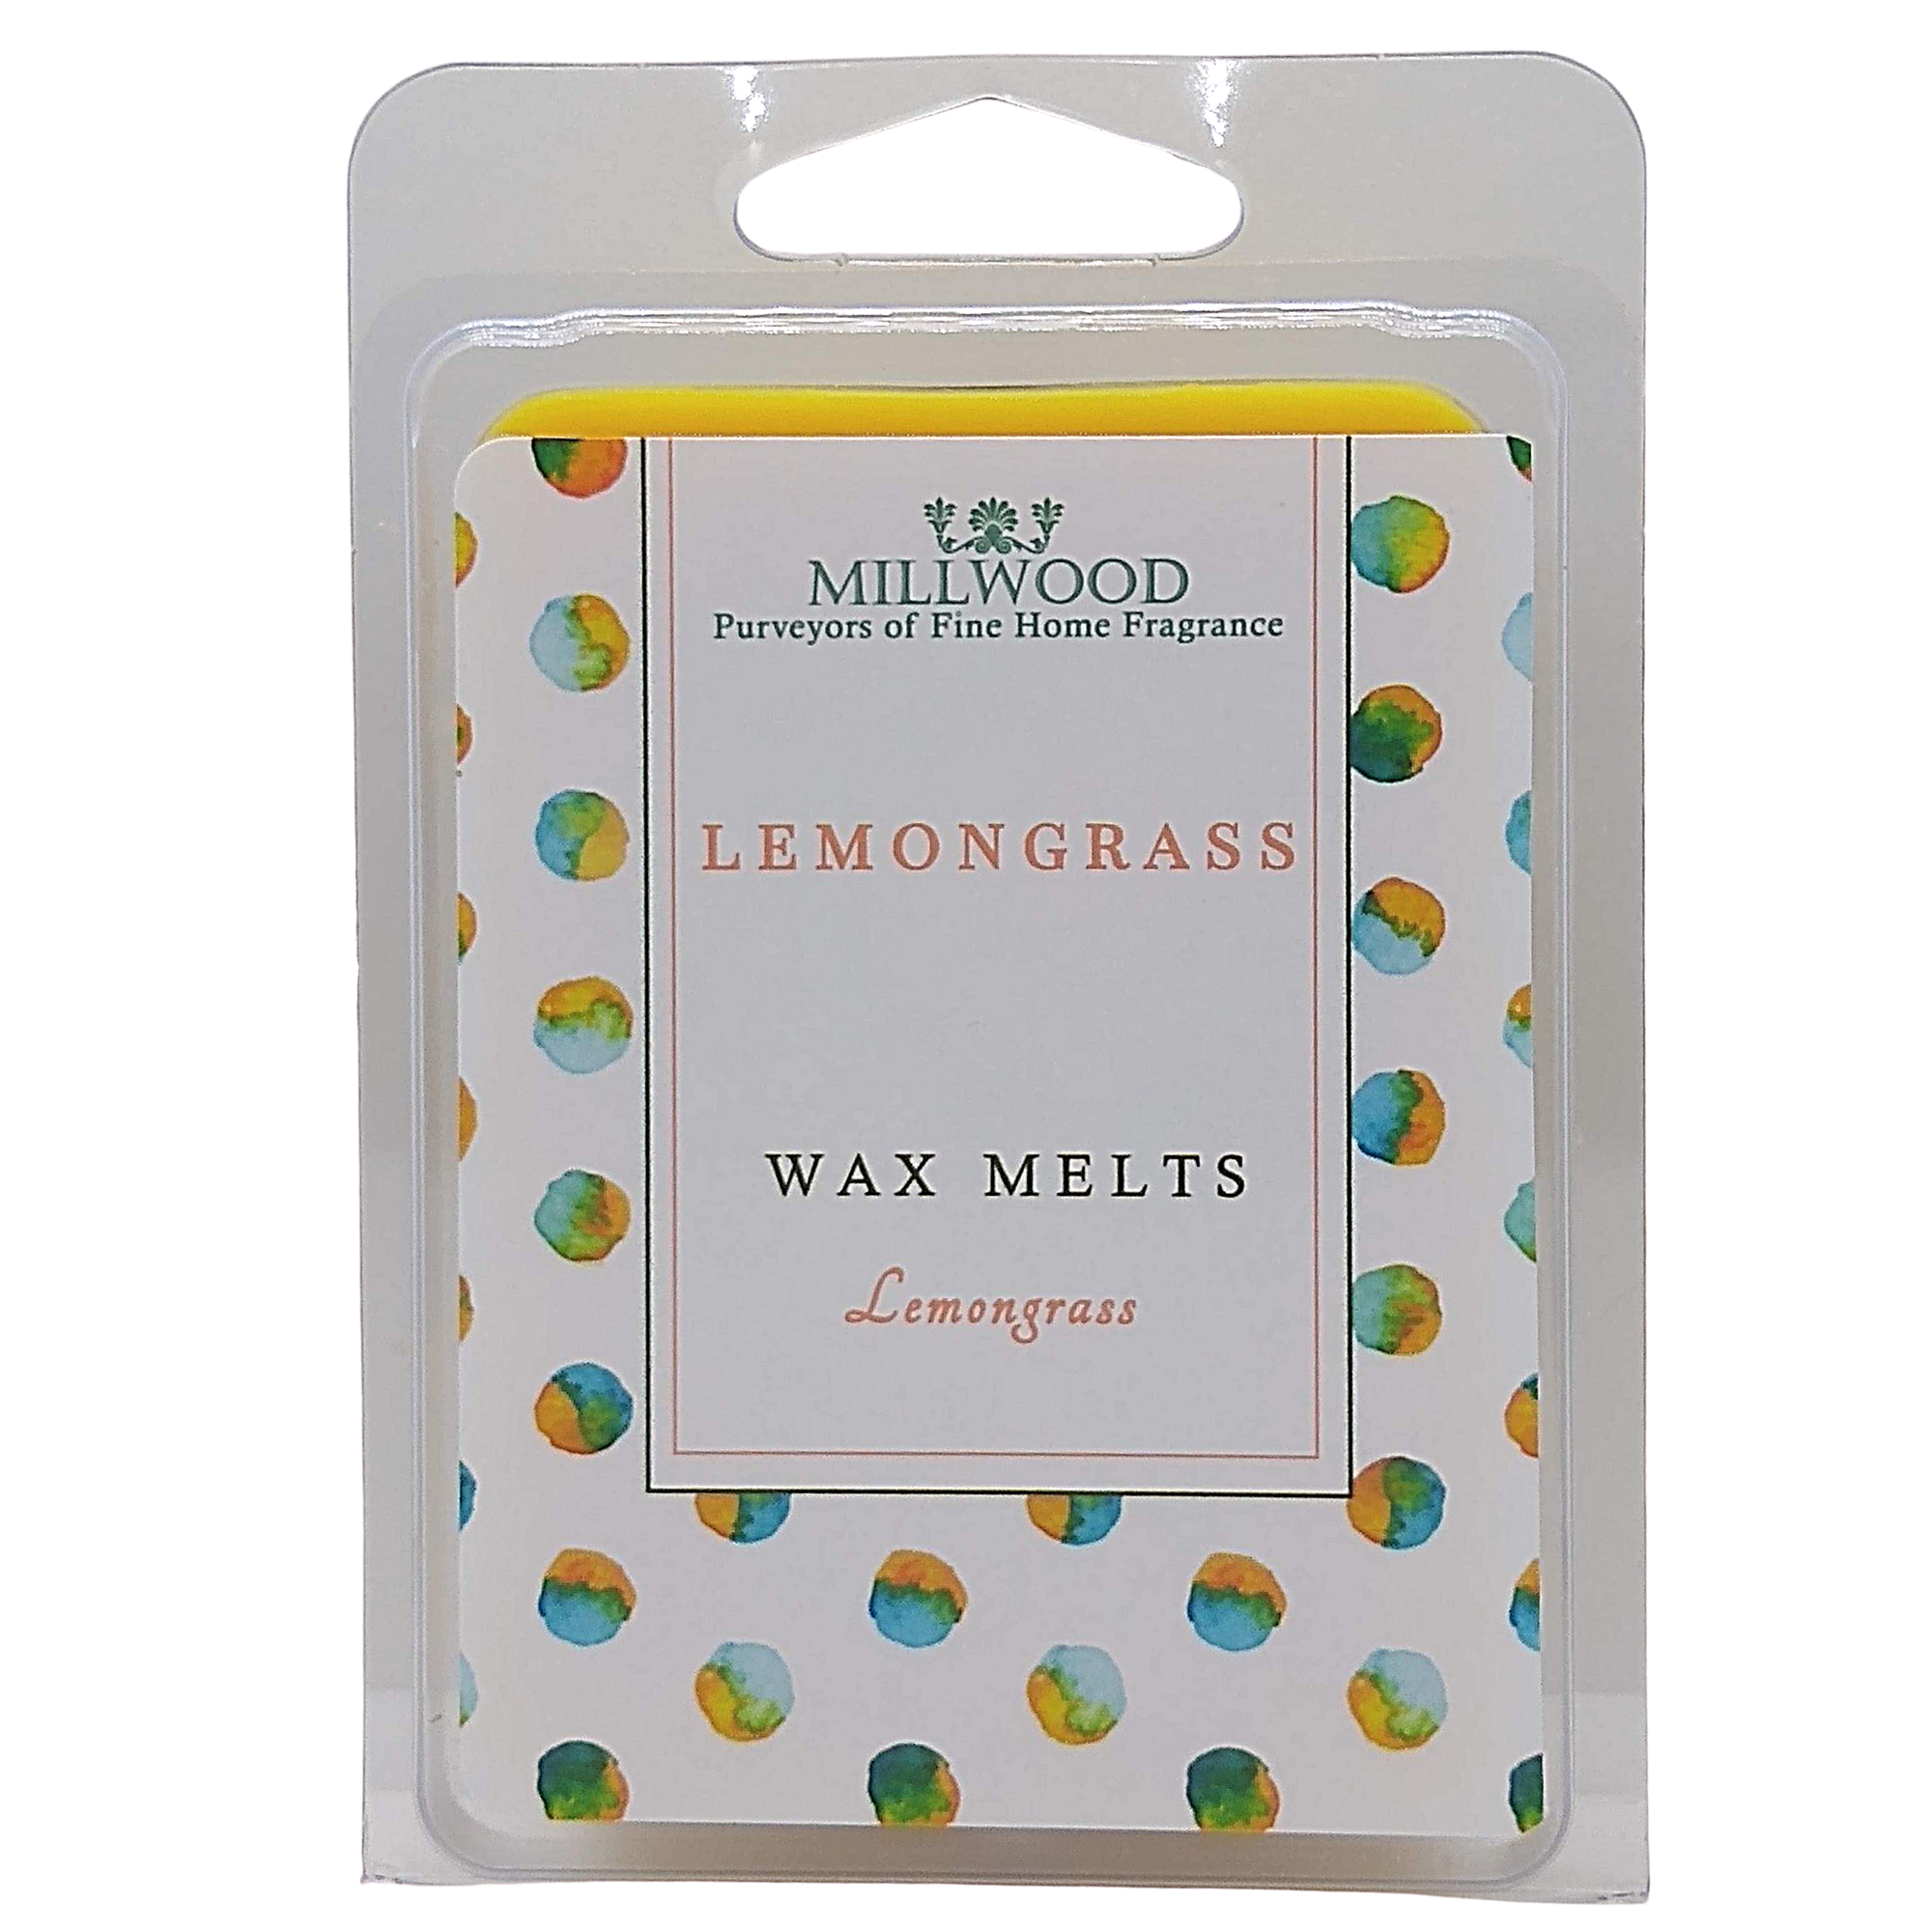 Lemongrass Wax Melts. All Natural Soy